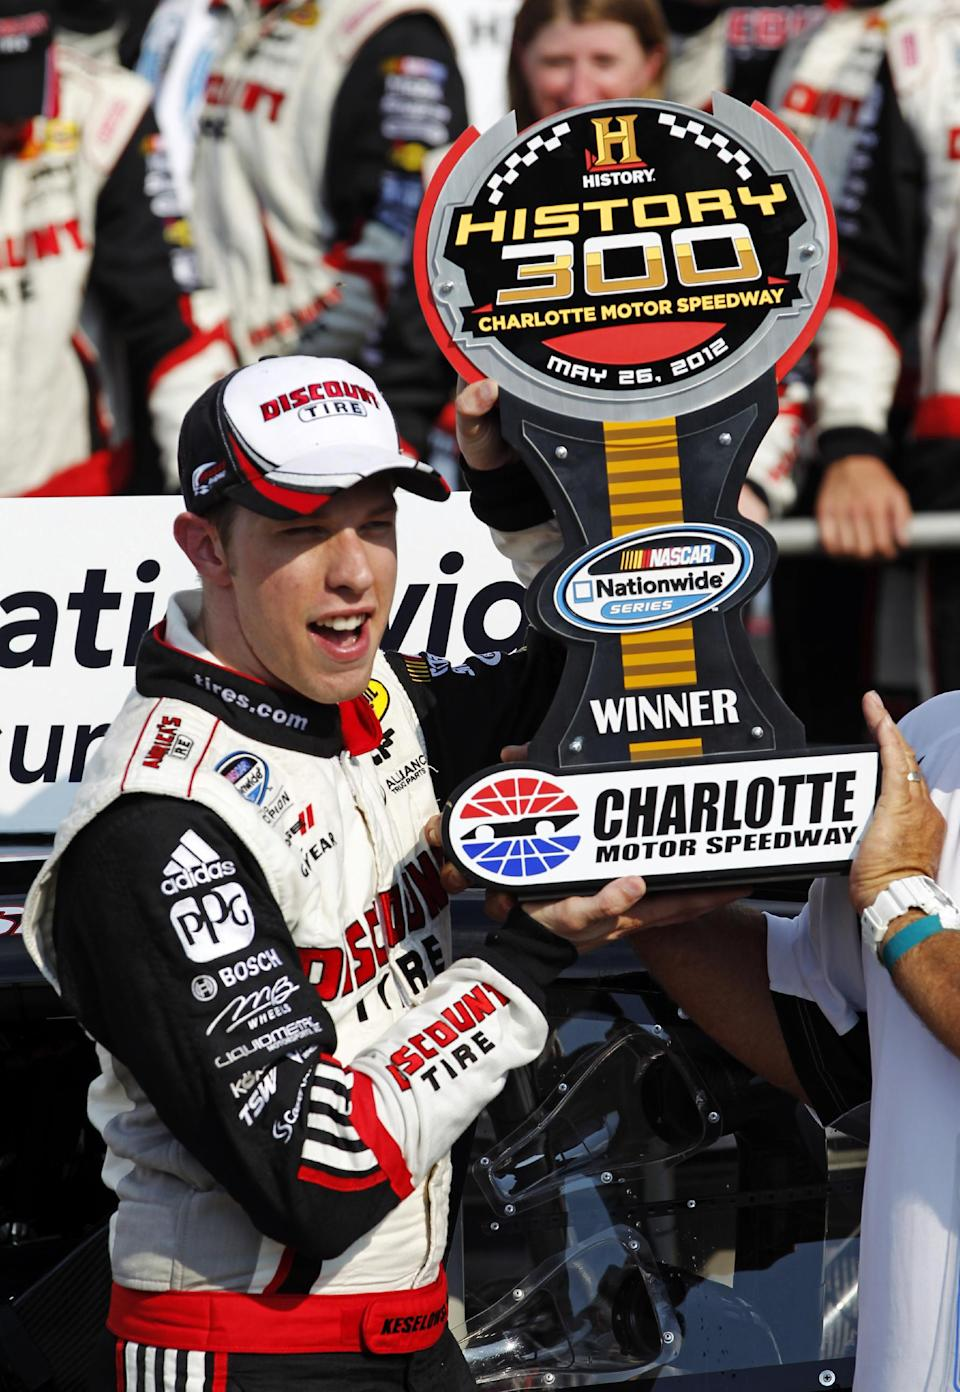 Brad Keselowski holds the trophy in victory lane after winning the NASCAR History 300 Nationwide Series auto race in Concord, N.C., Saturday, May 26, 2012. (AP Photo/Terry Renna)